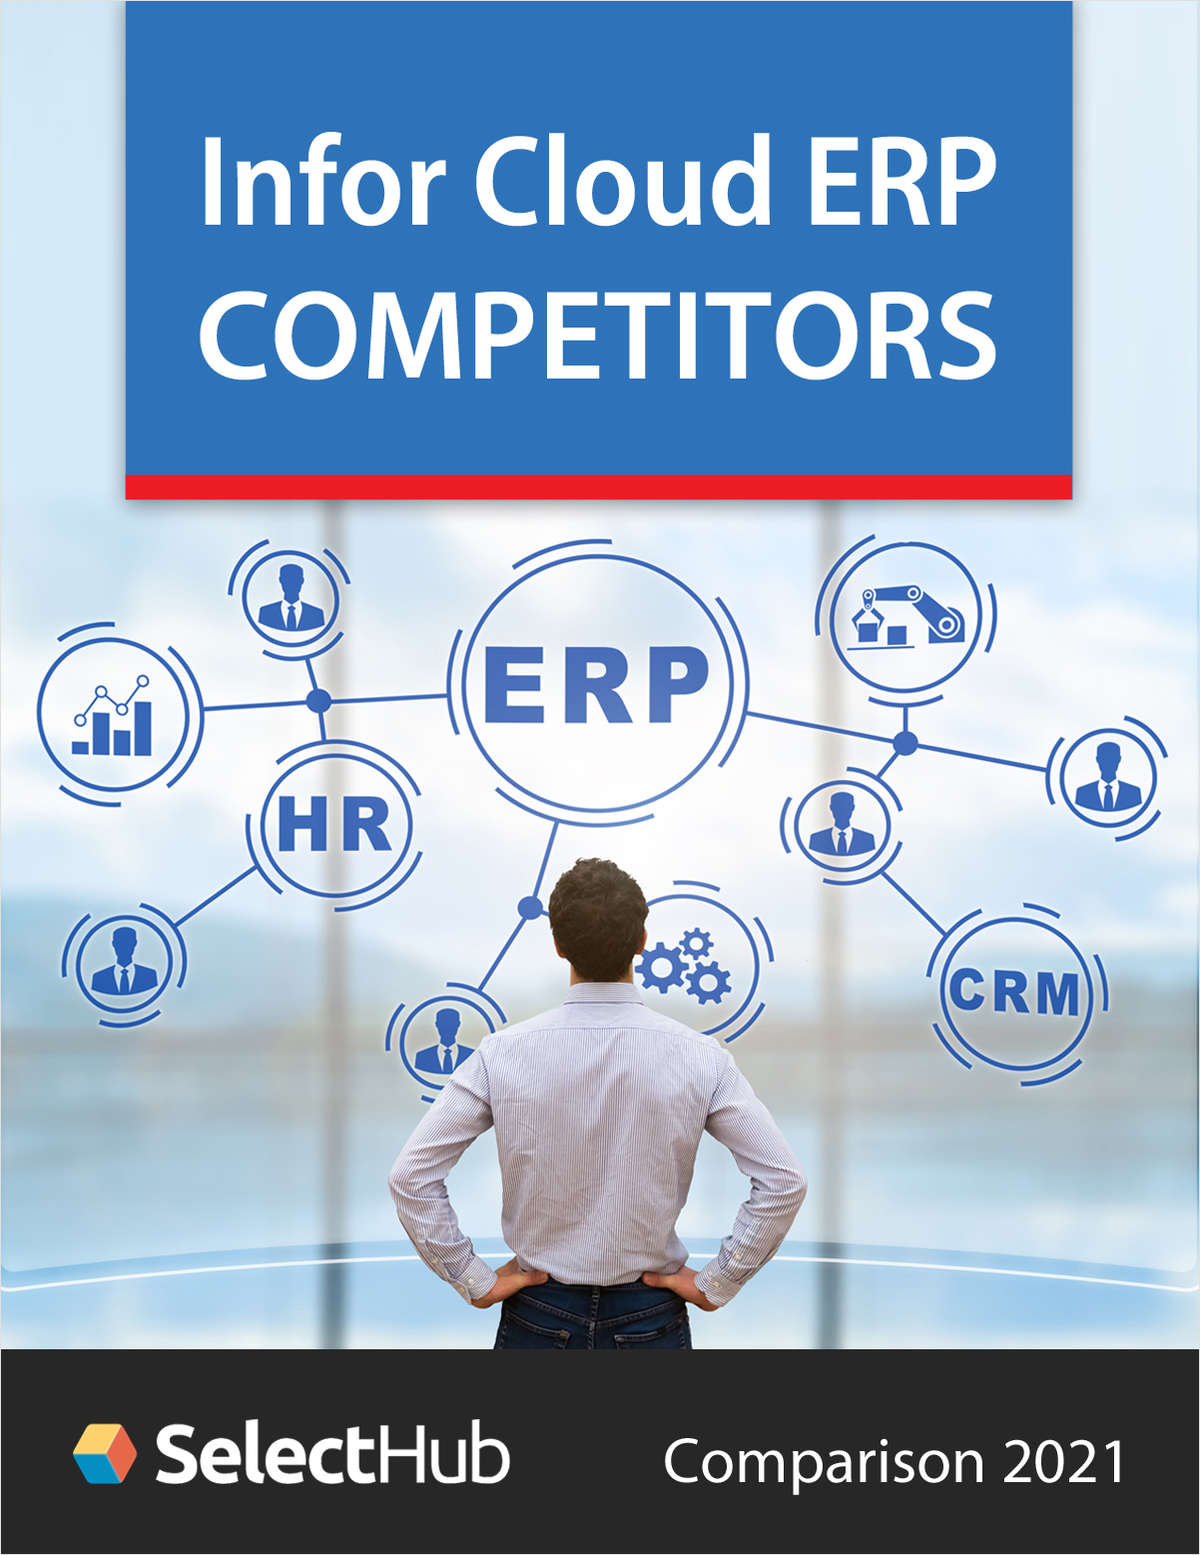 Top Infor Cloud ERP Competitors & Alternatives in 2021